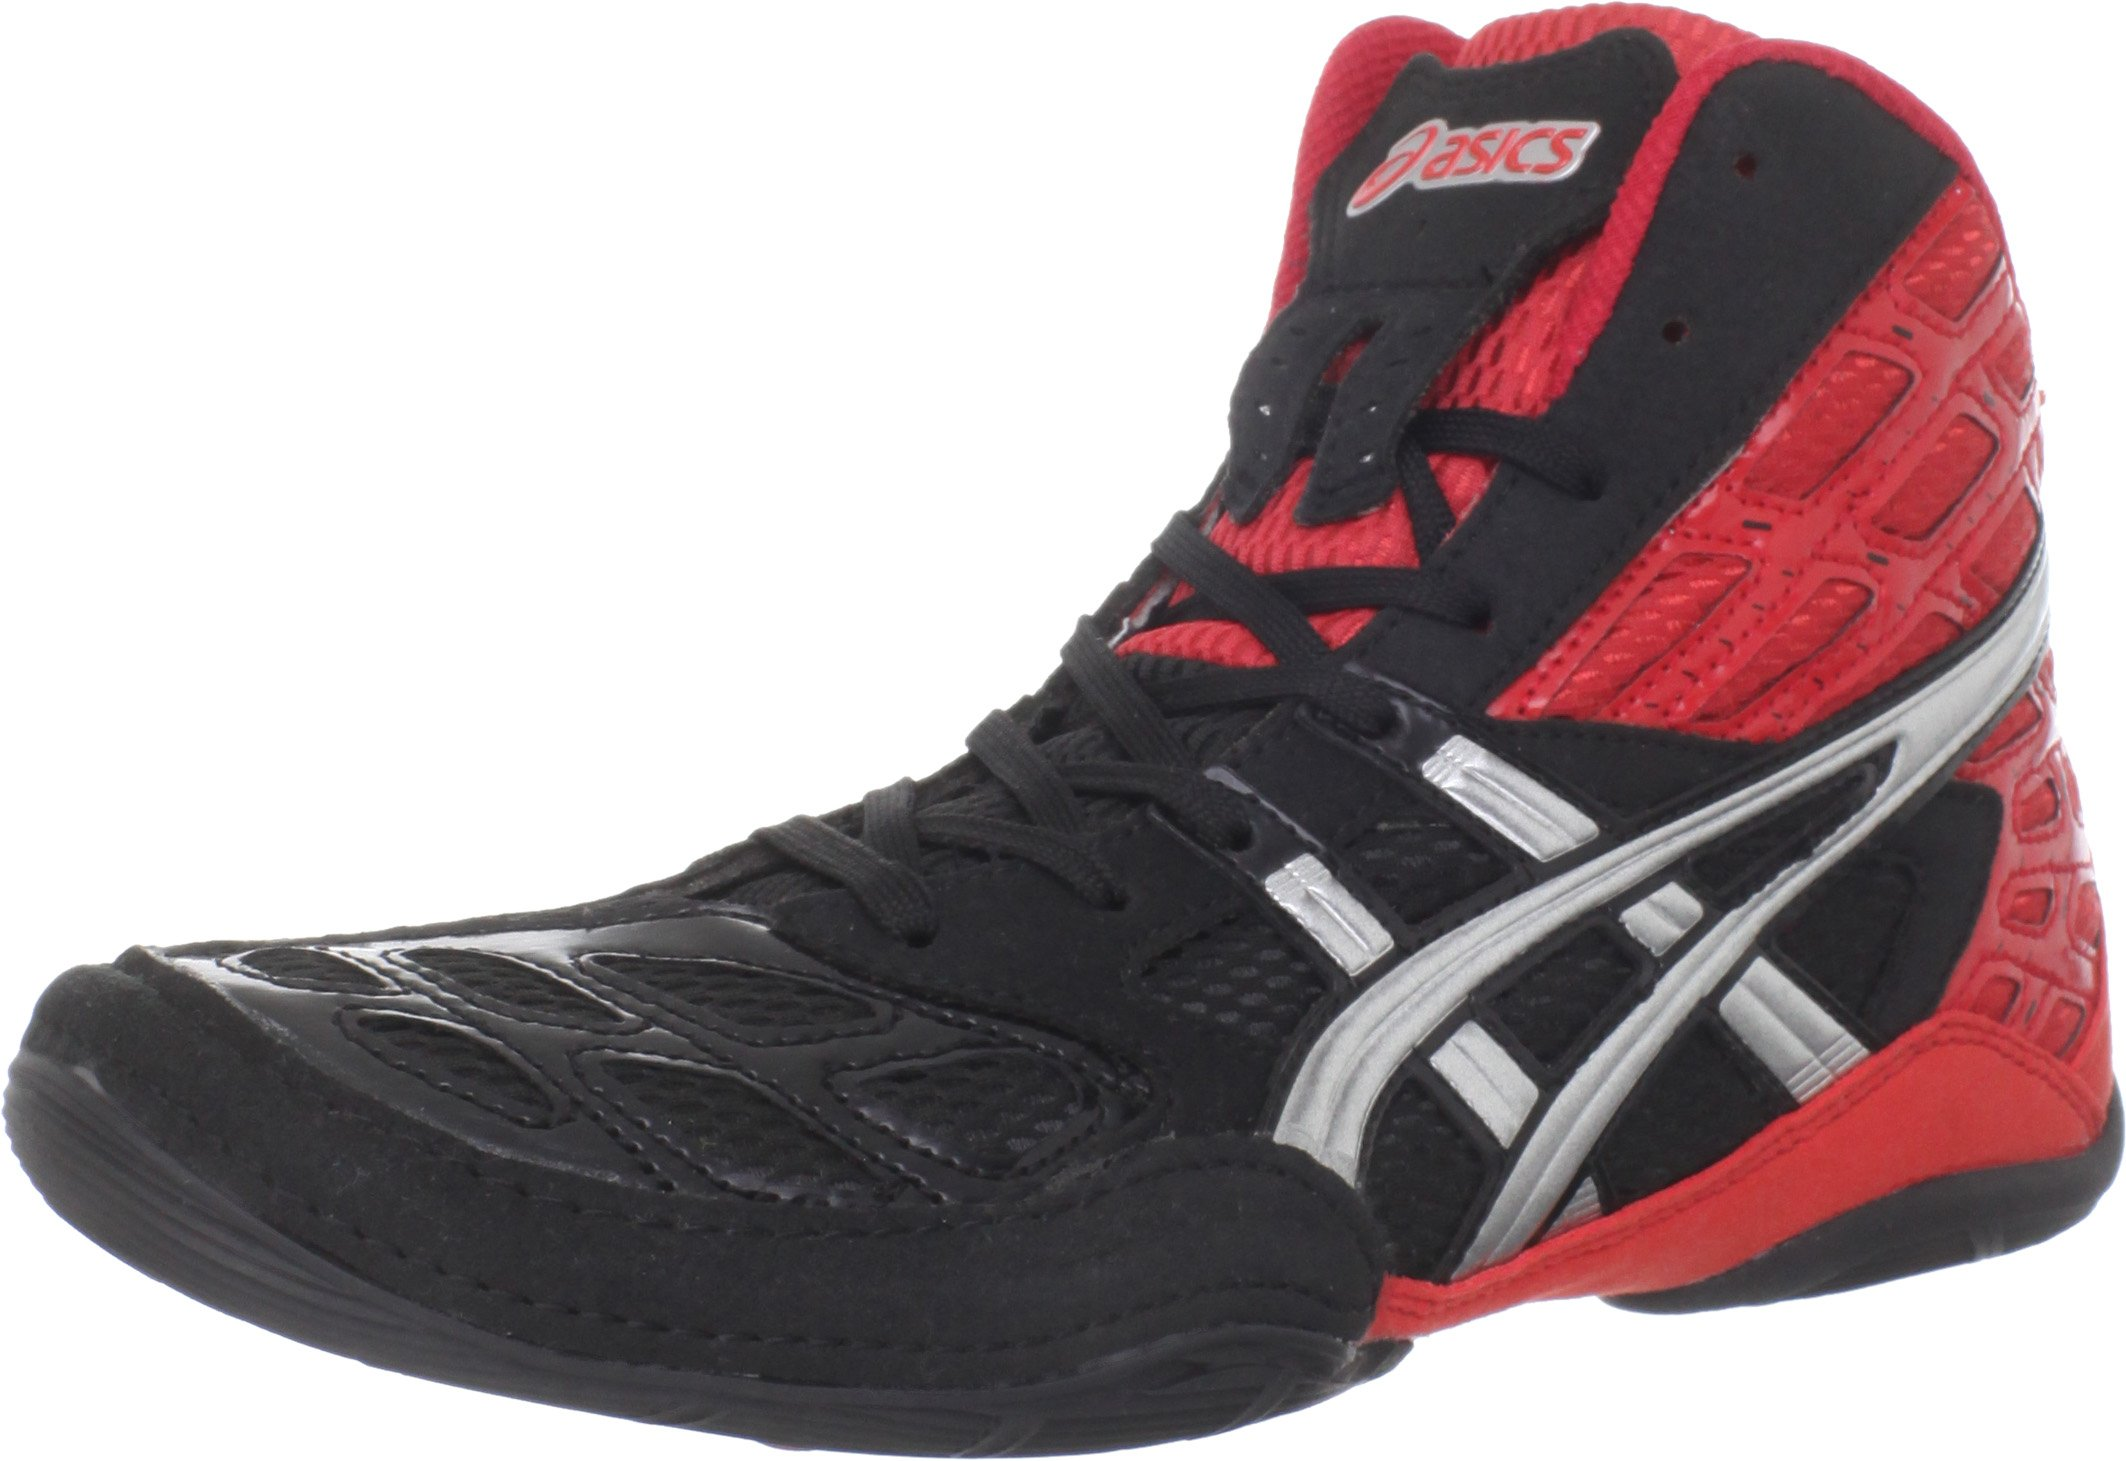 ASICS Men's Split Second 9 Wrestling Shoe,Red/Silver/Black,9 M US